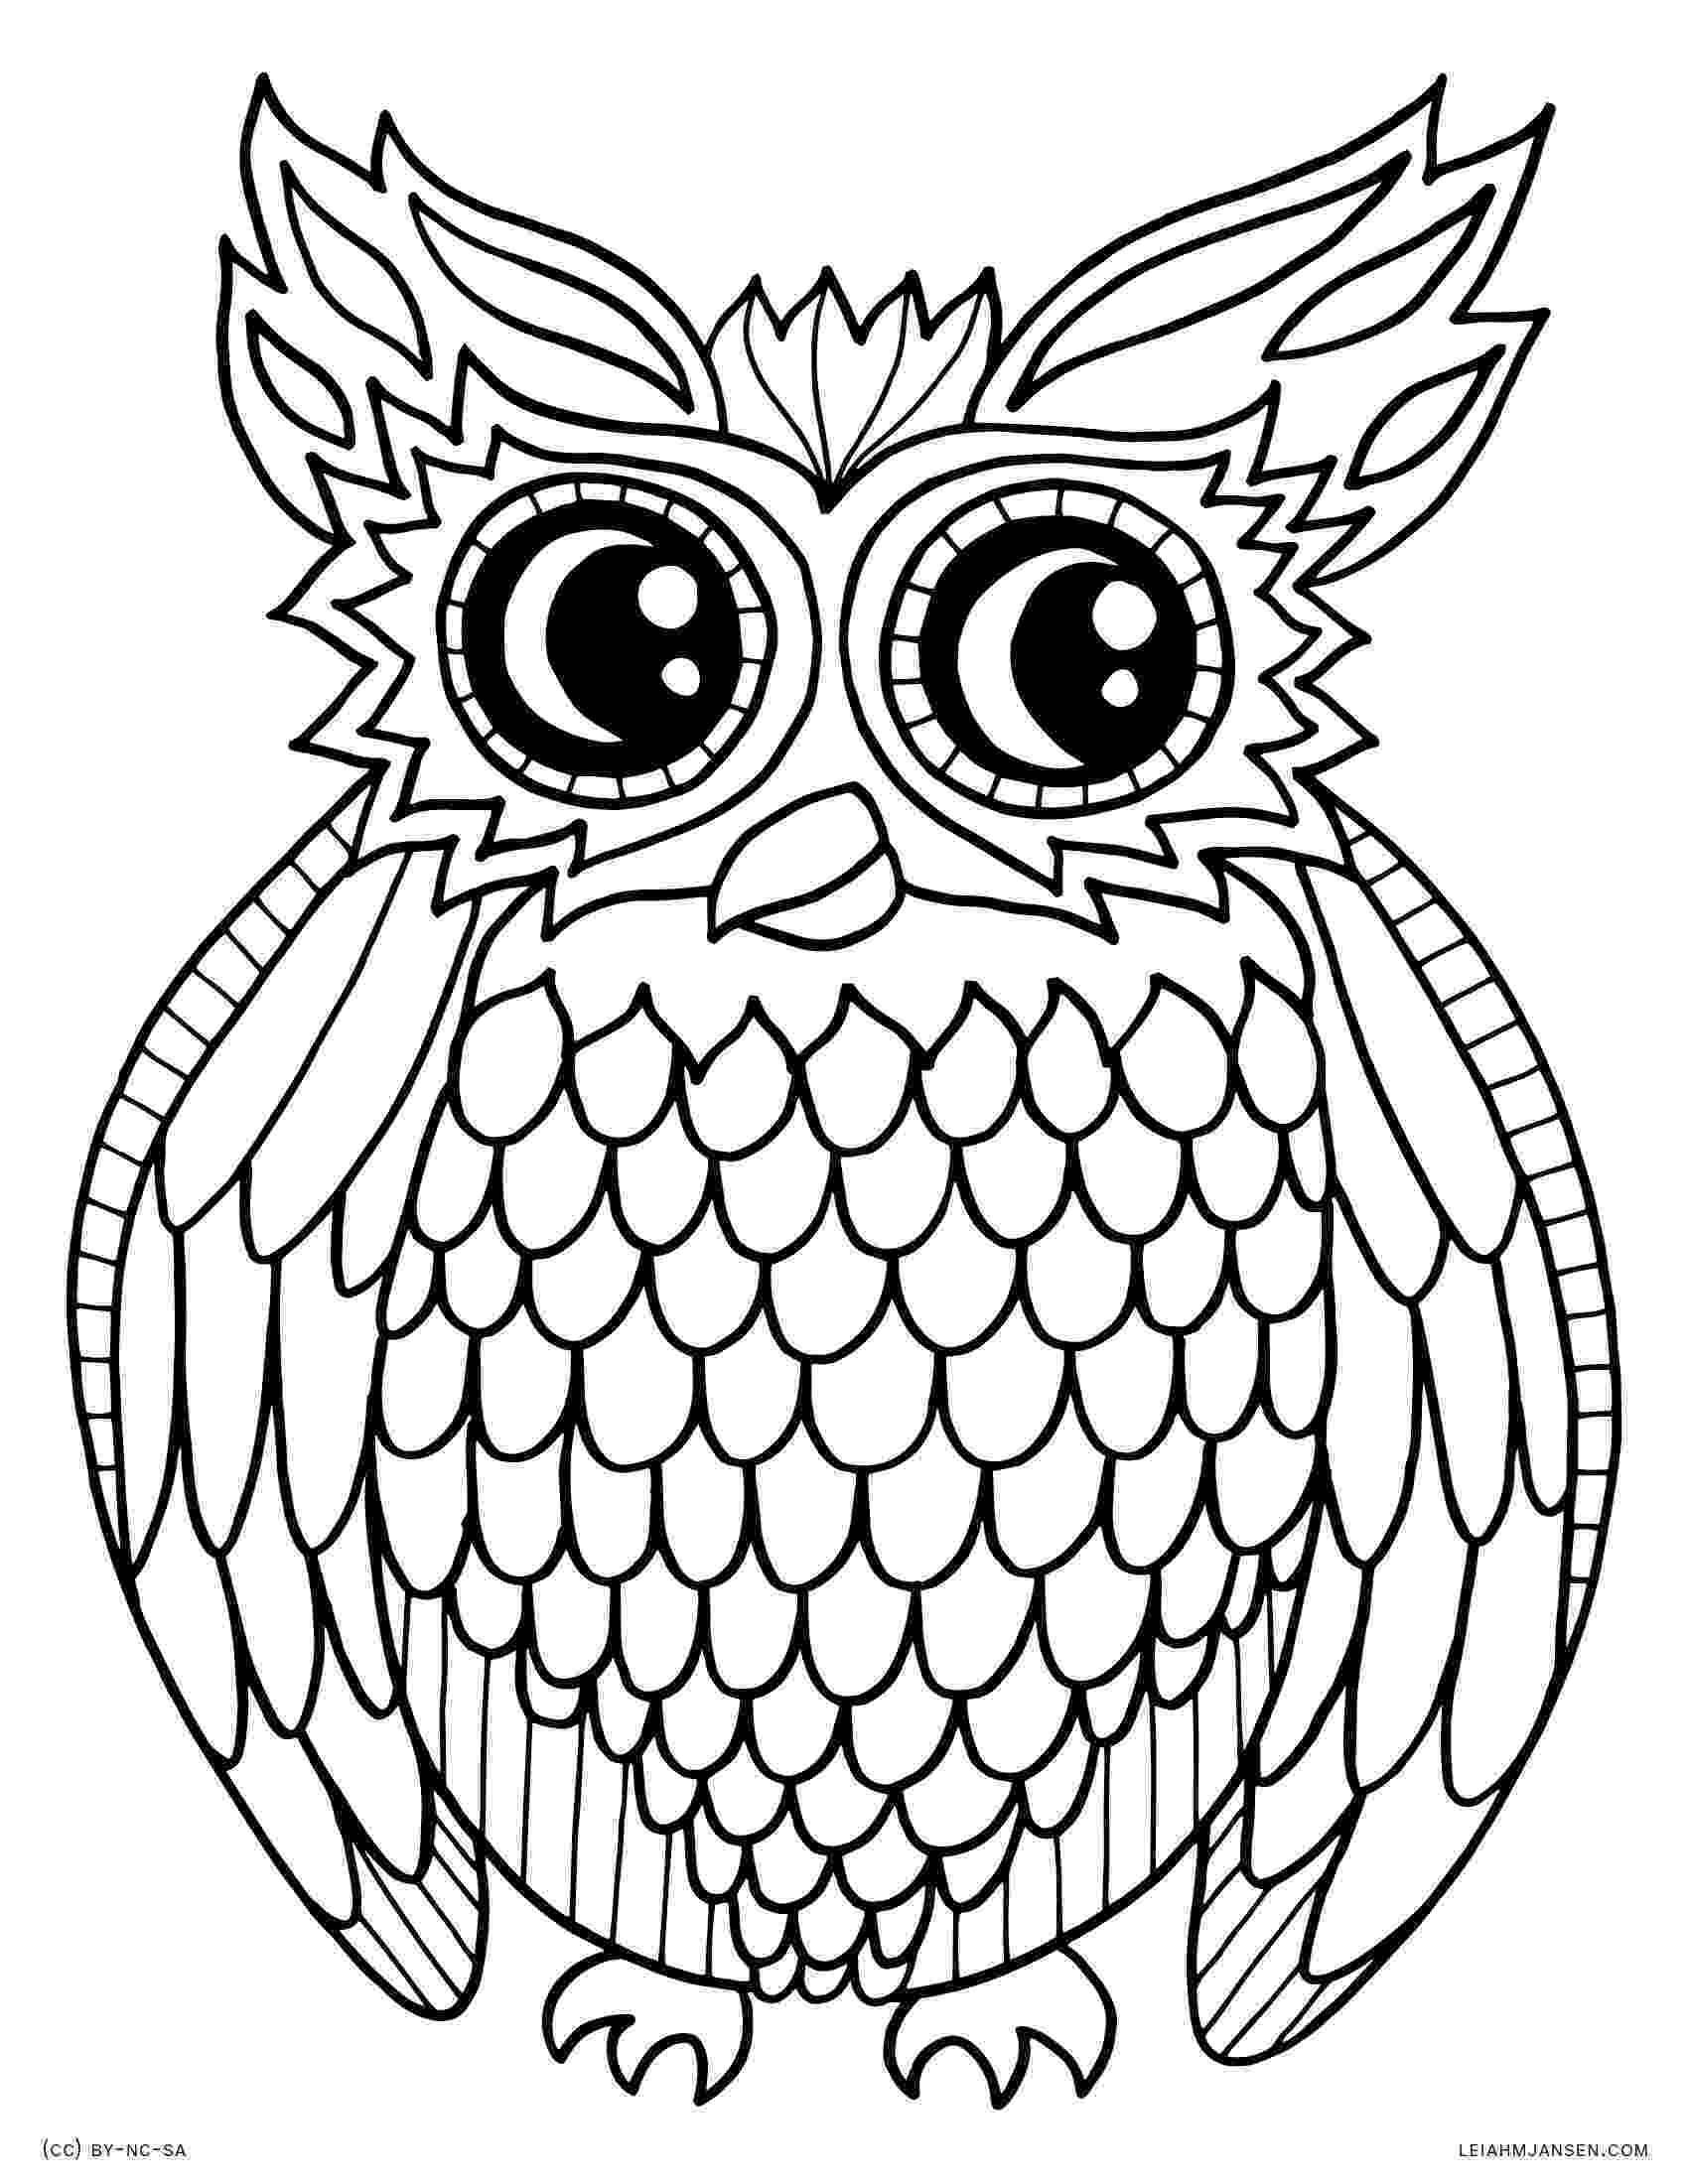 owl coloring picture selimut ku cute lil39 owl coloring owl picture